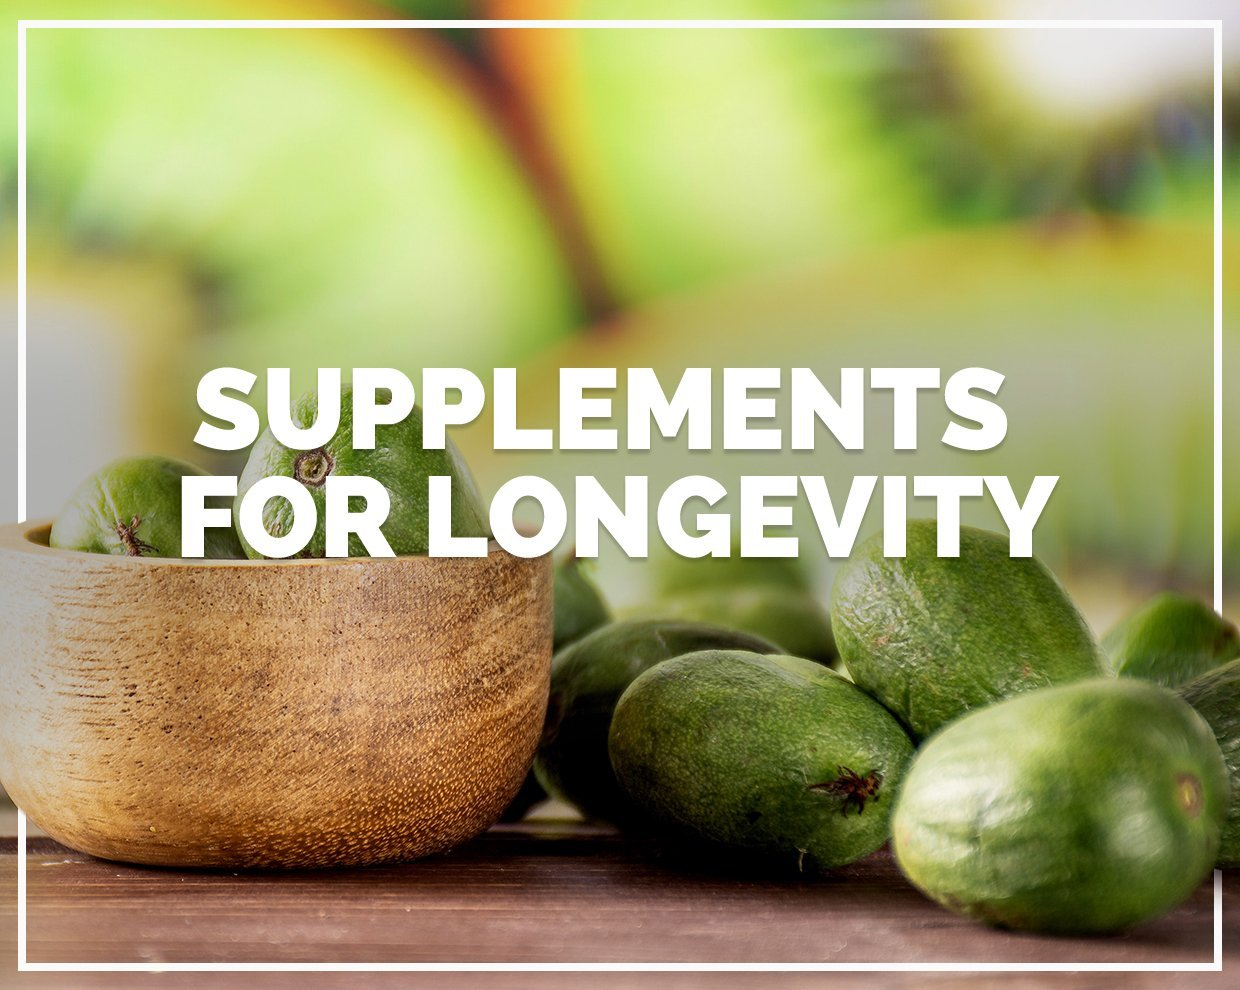 Supplements for longevity